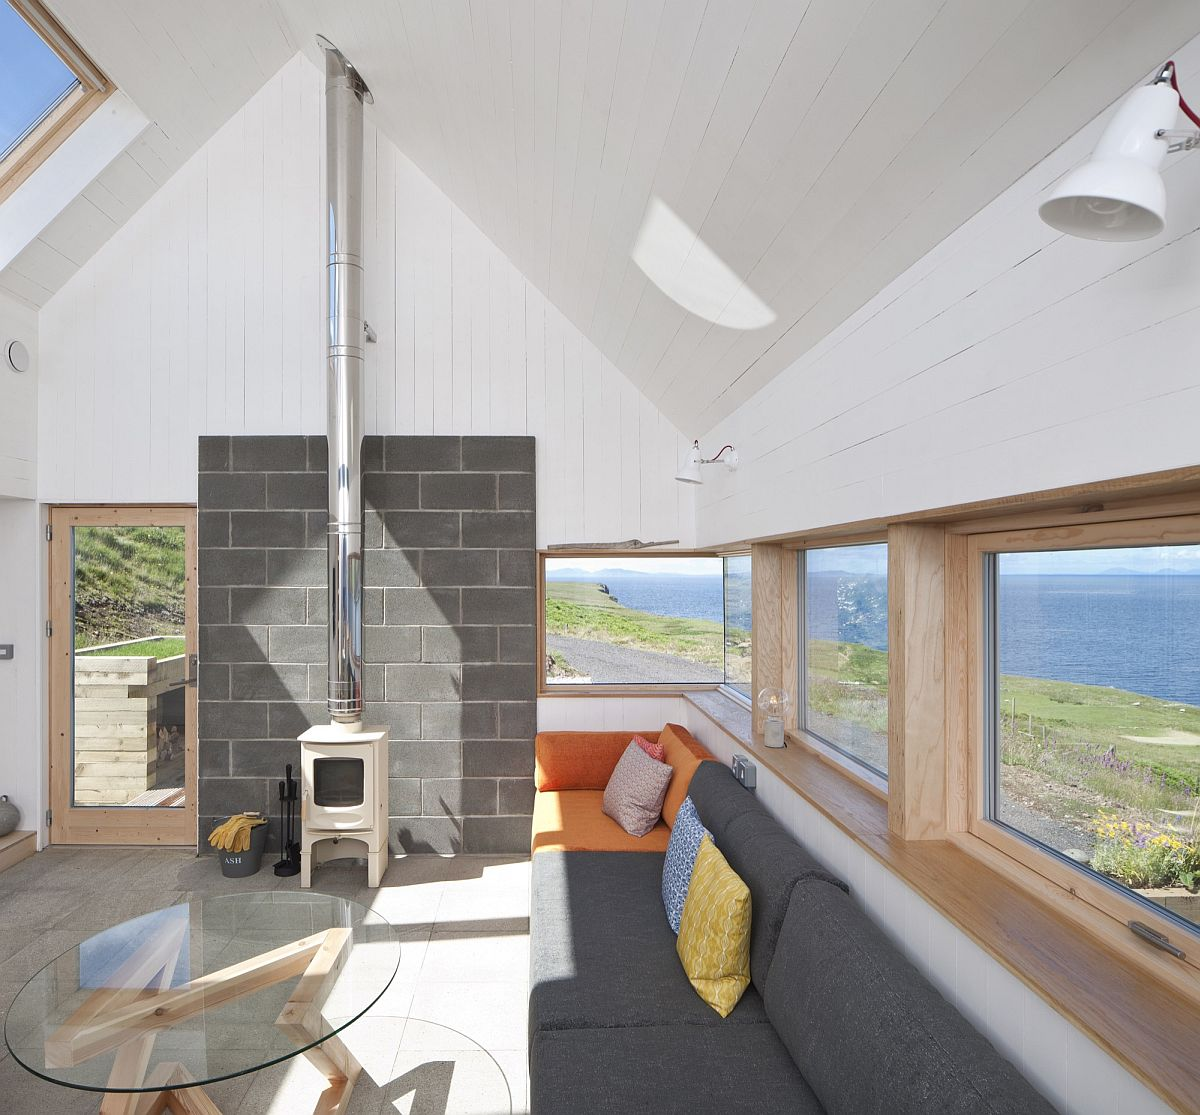 A series of timber framed windows connect the social zone with the outdoors